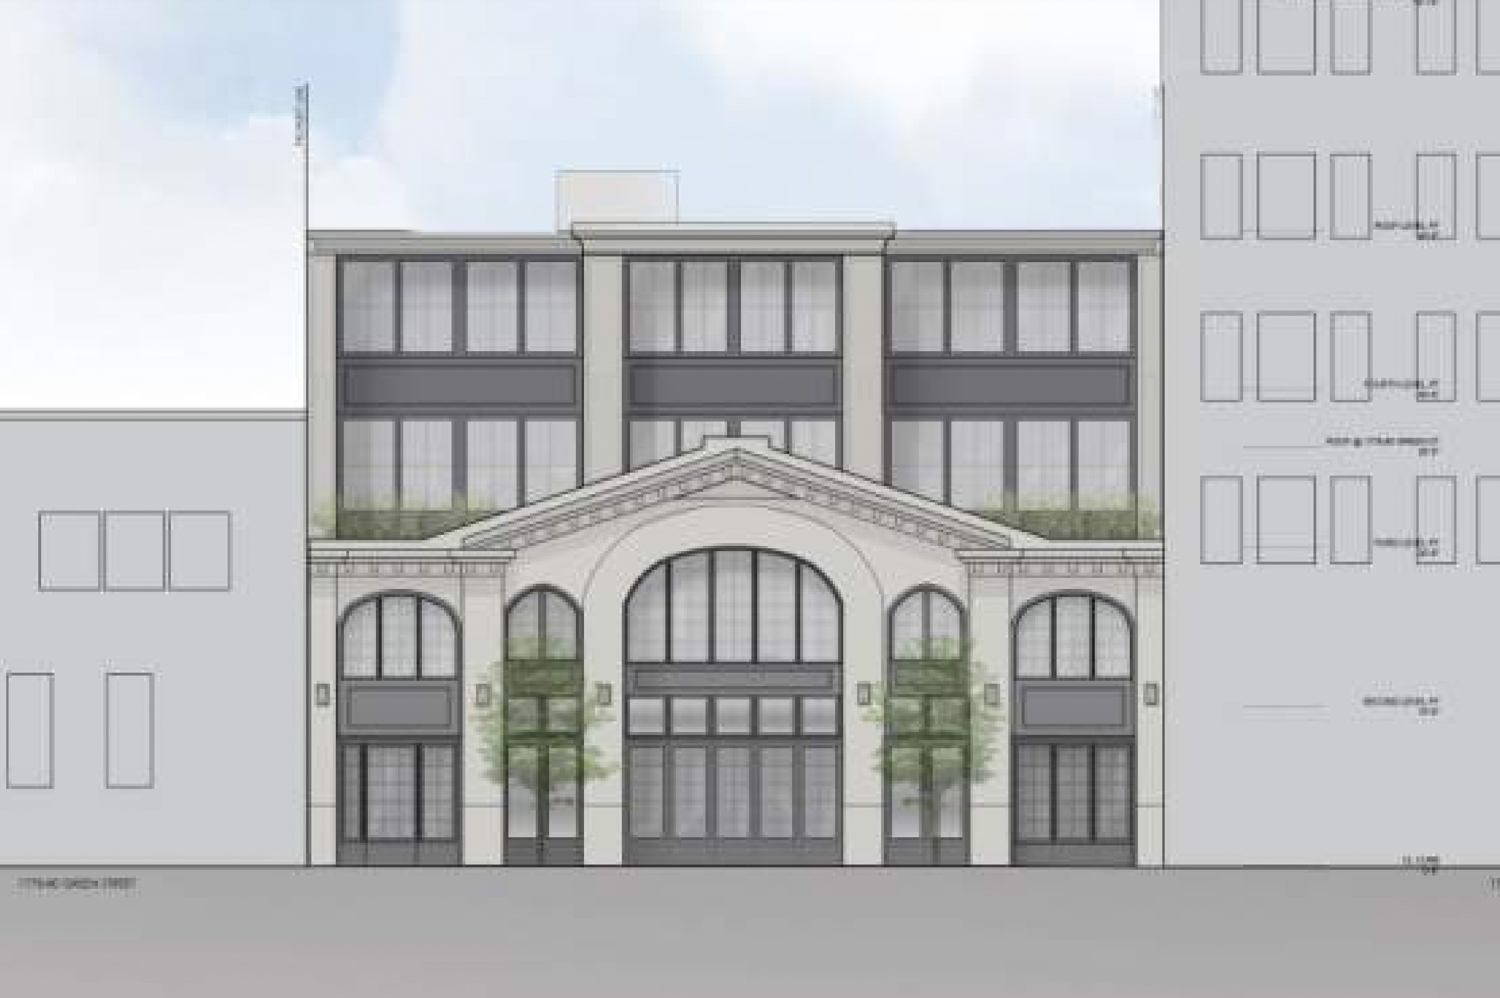 1776 Green Street facade elevation, rendering by Sutro Architects